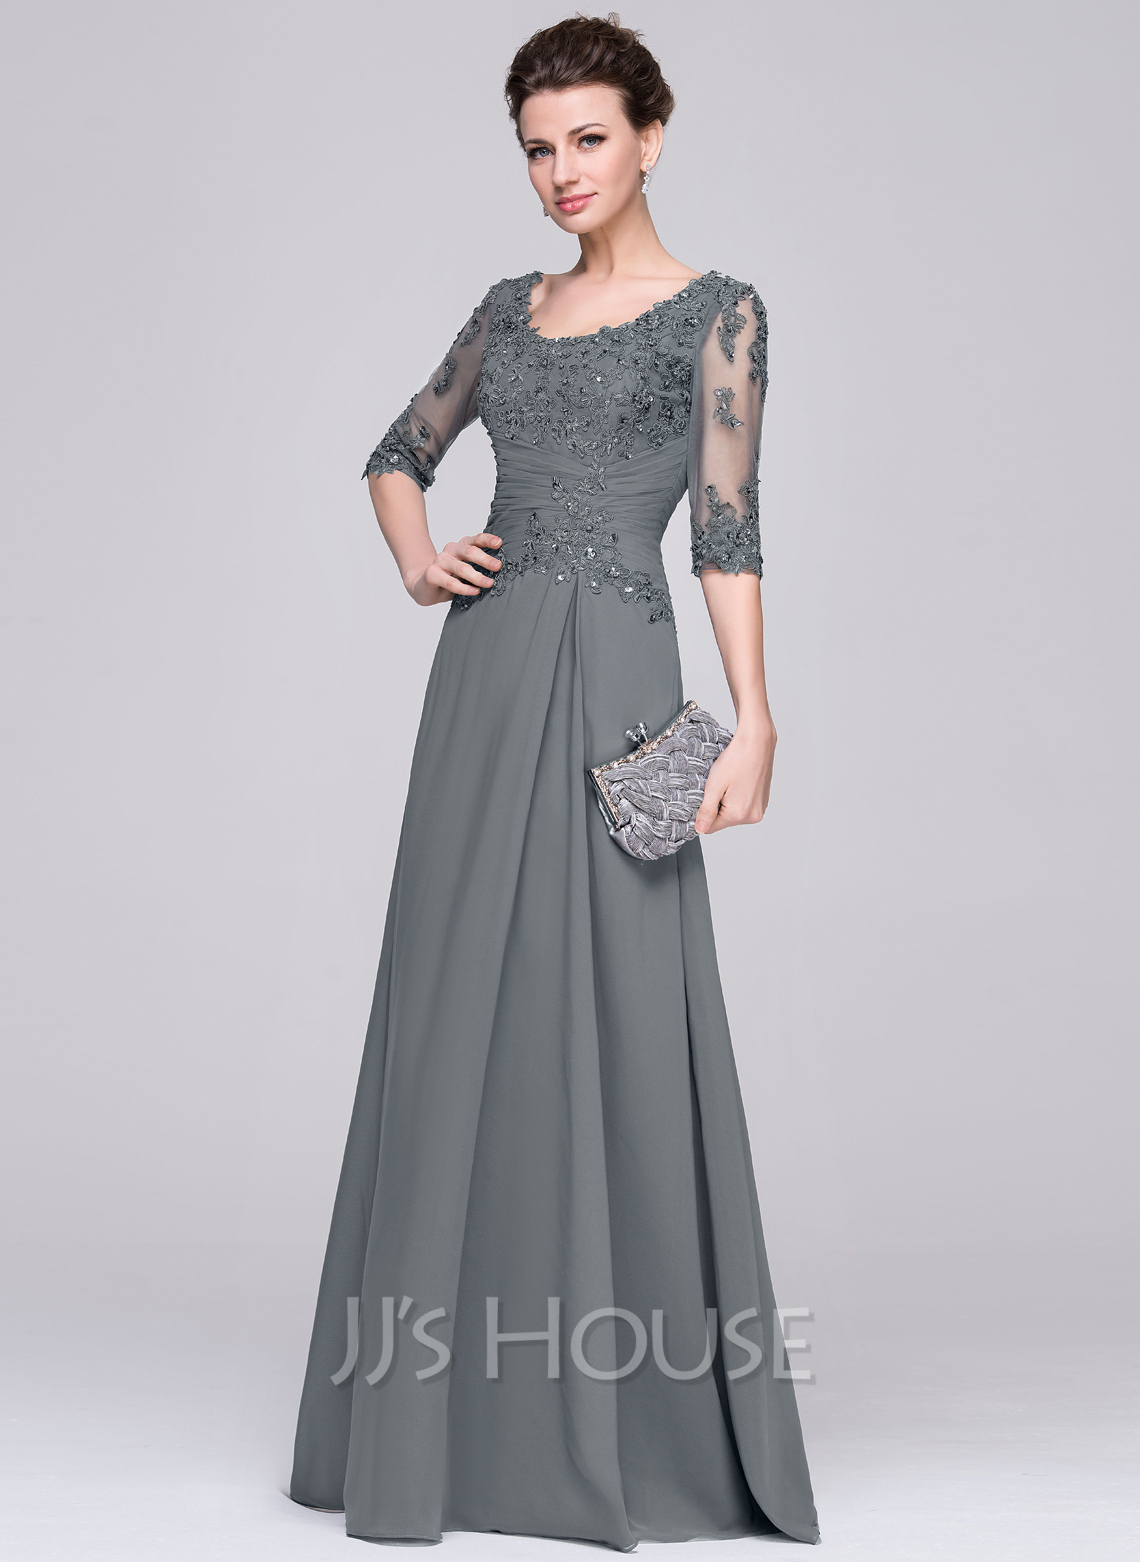 2a010ff235b95 A-Line/Princess Scoop Neck Floor-Length Chiffon Mother of the Bride Dress.  Loading zoom